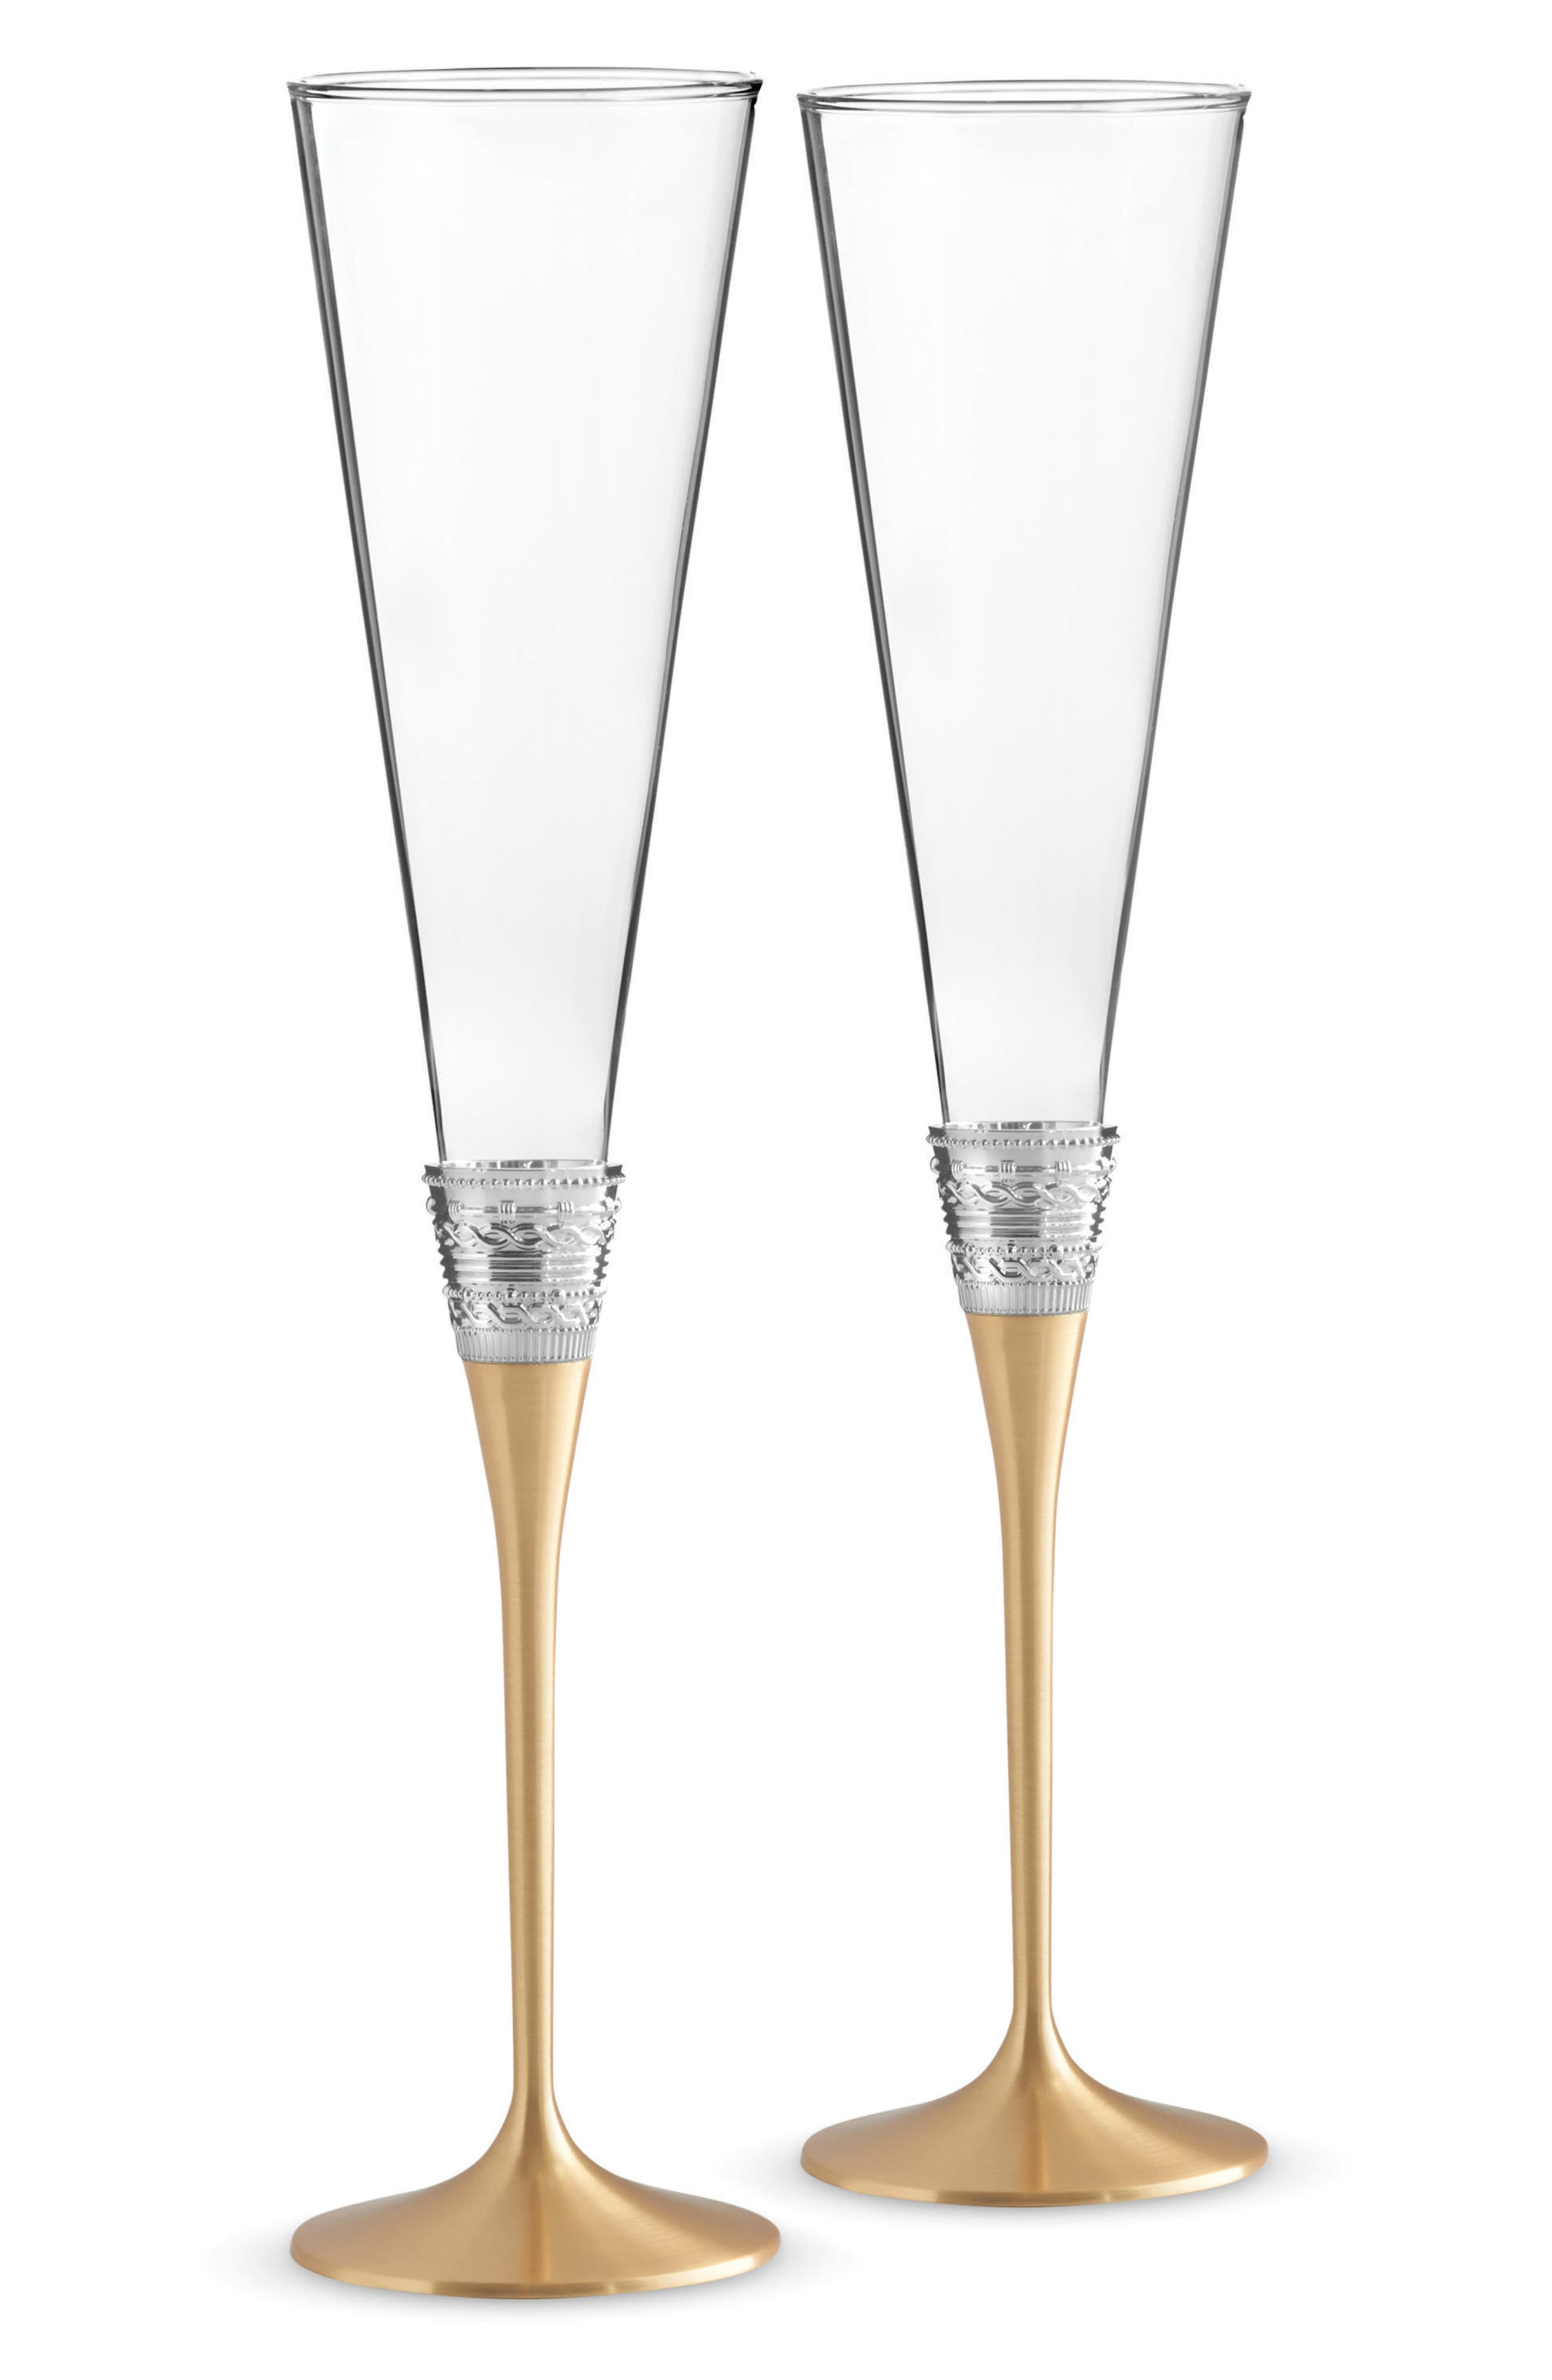 x Wedgwood With Love Collection Set of 2 Toasting Flutes,                         Main,                         color, Metallic Silver